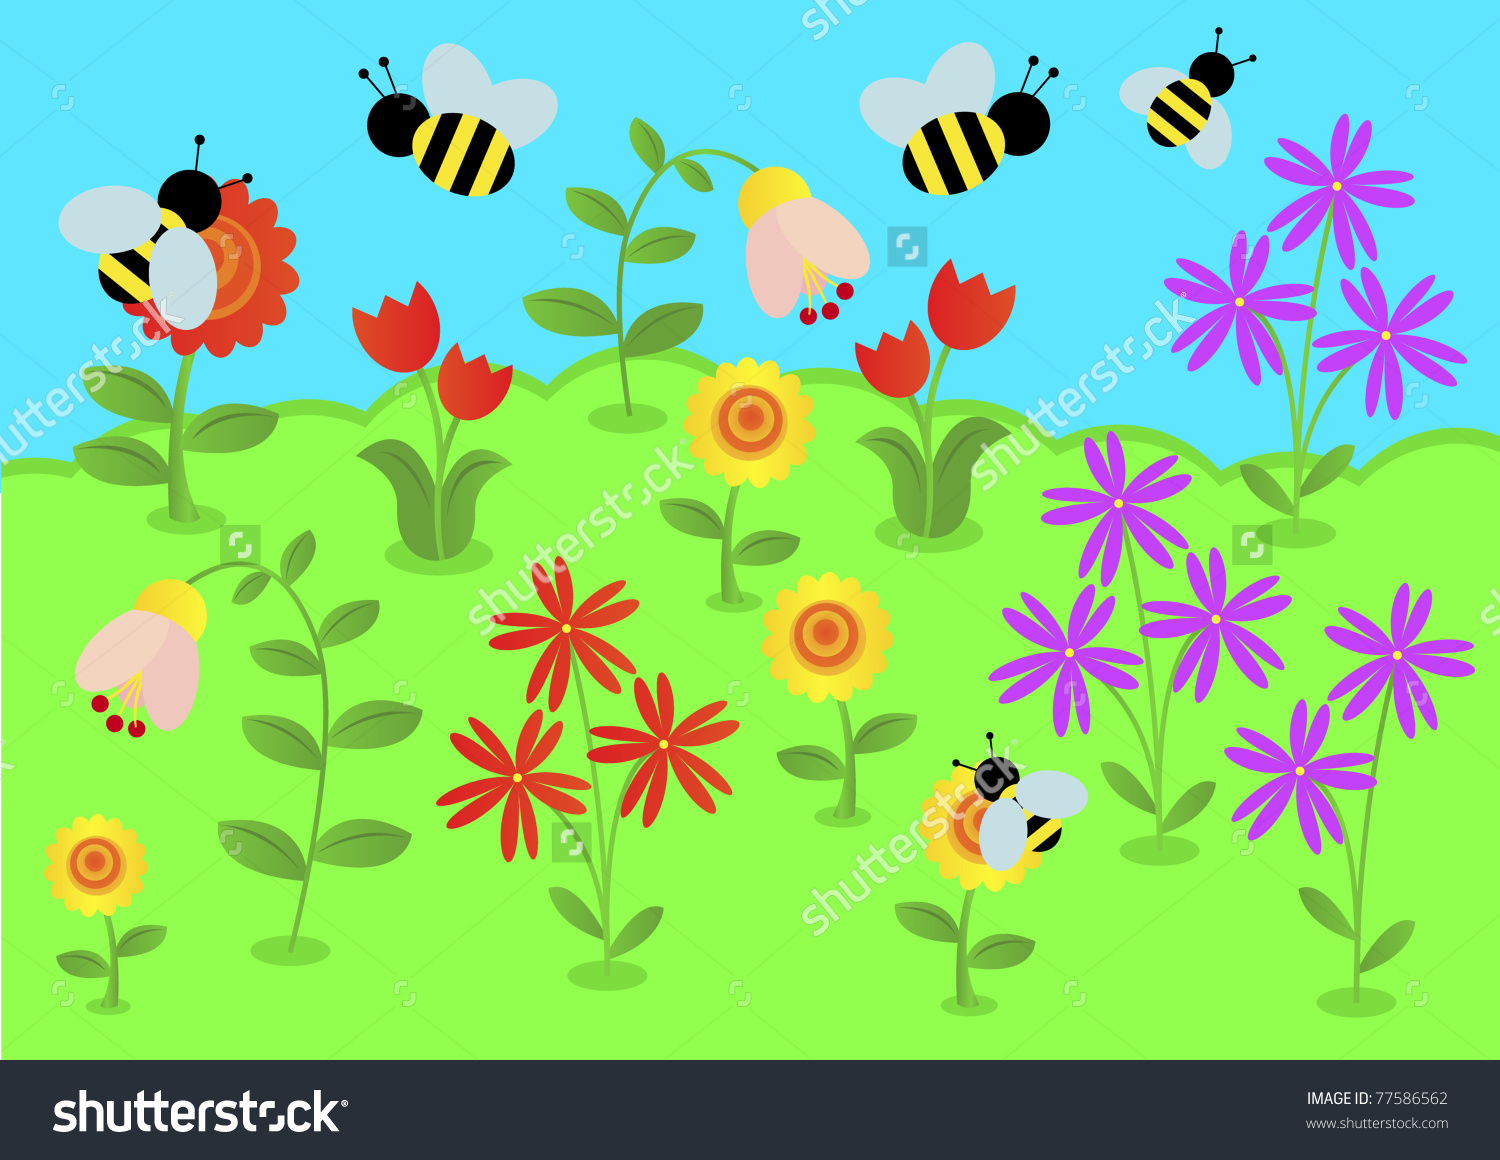 Bumblebees Flies To Collect Pollen From Flowers. Vector.